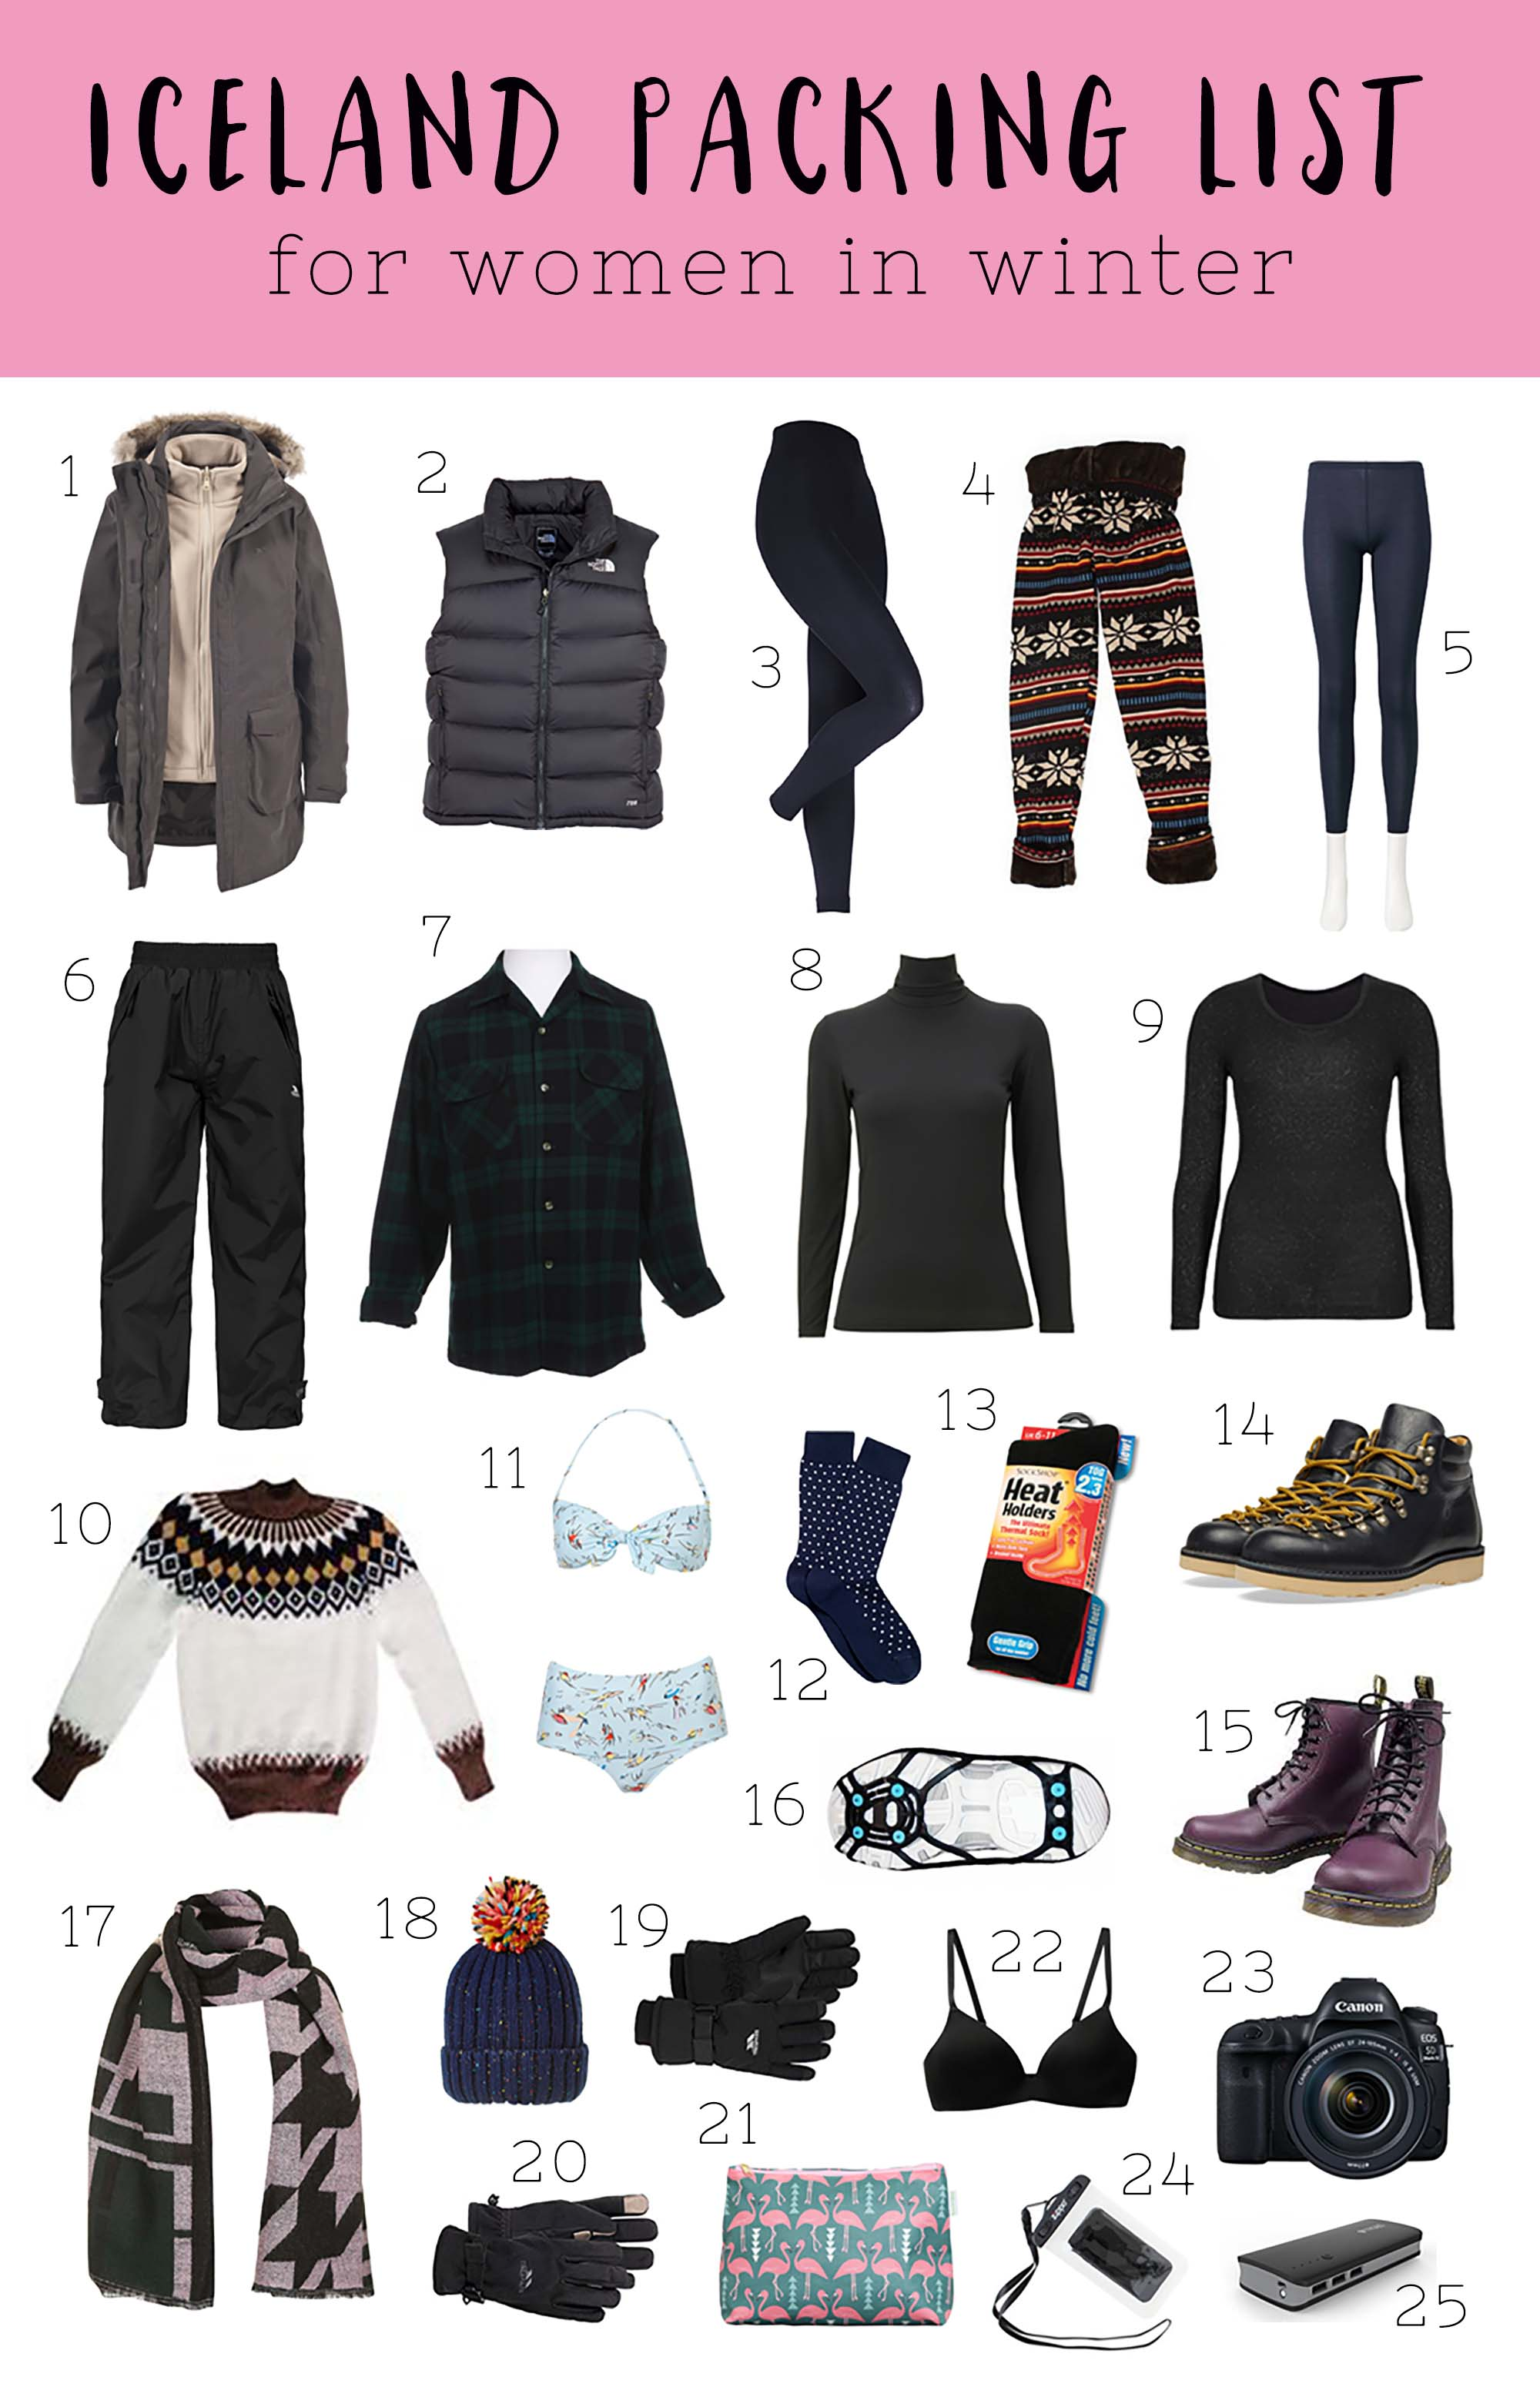 Iceland packing list for women